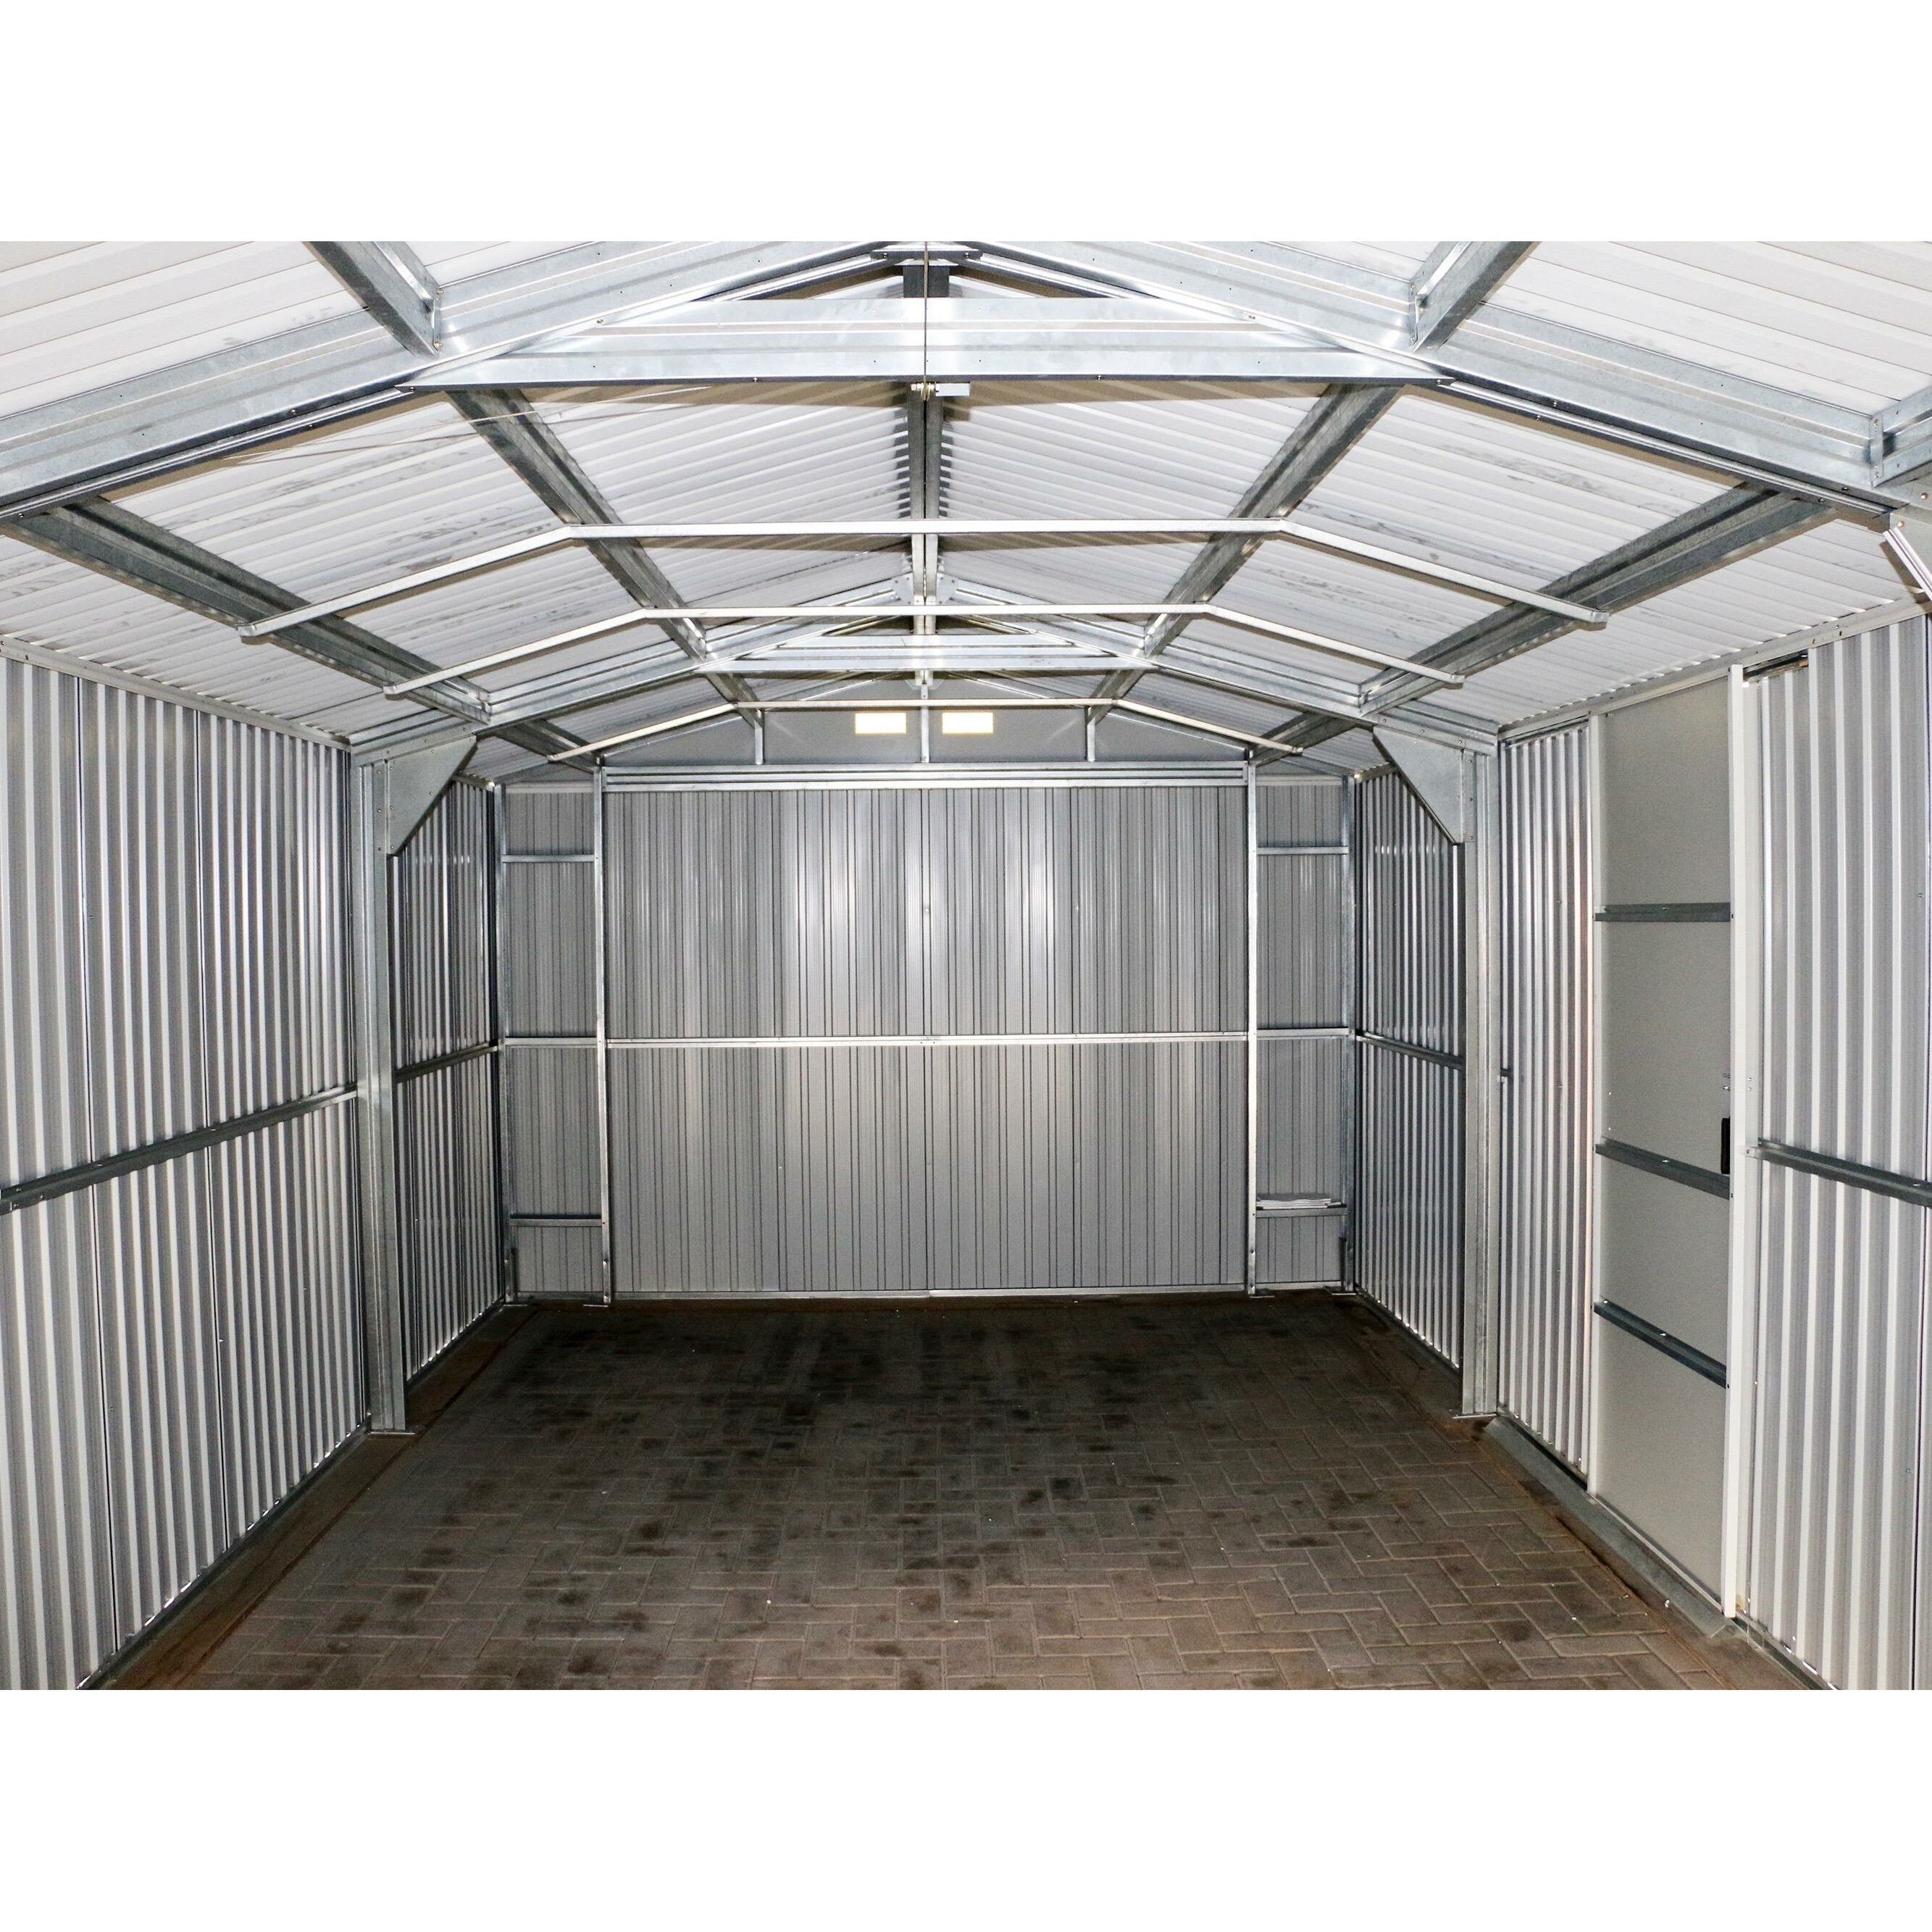 Duramax imperial 12 ft w x 20 ft d metal garage shed for Garden shed garage